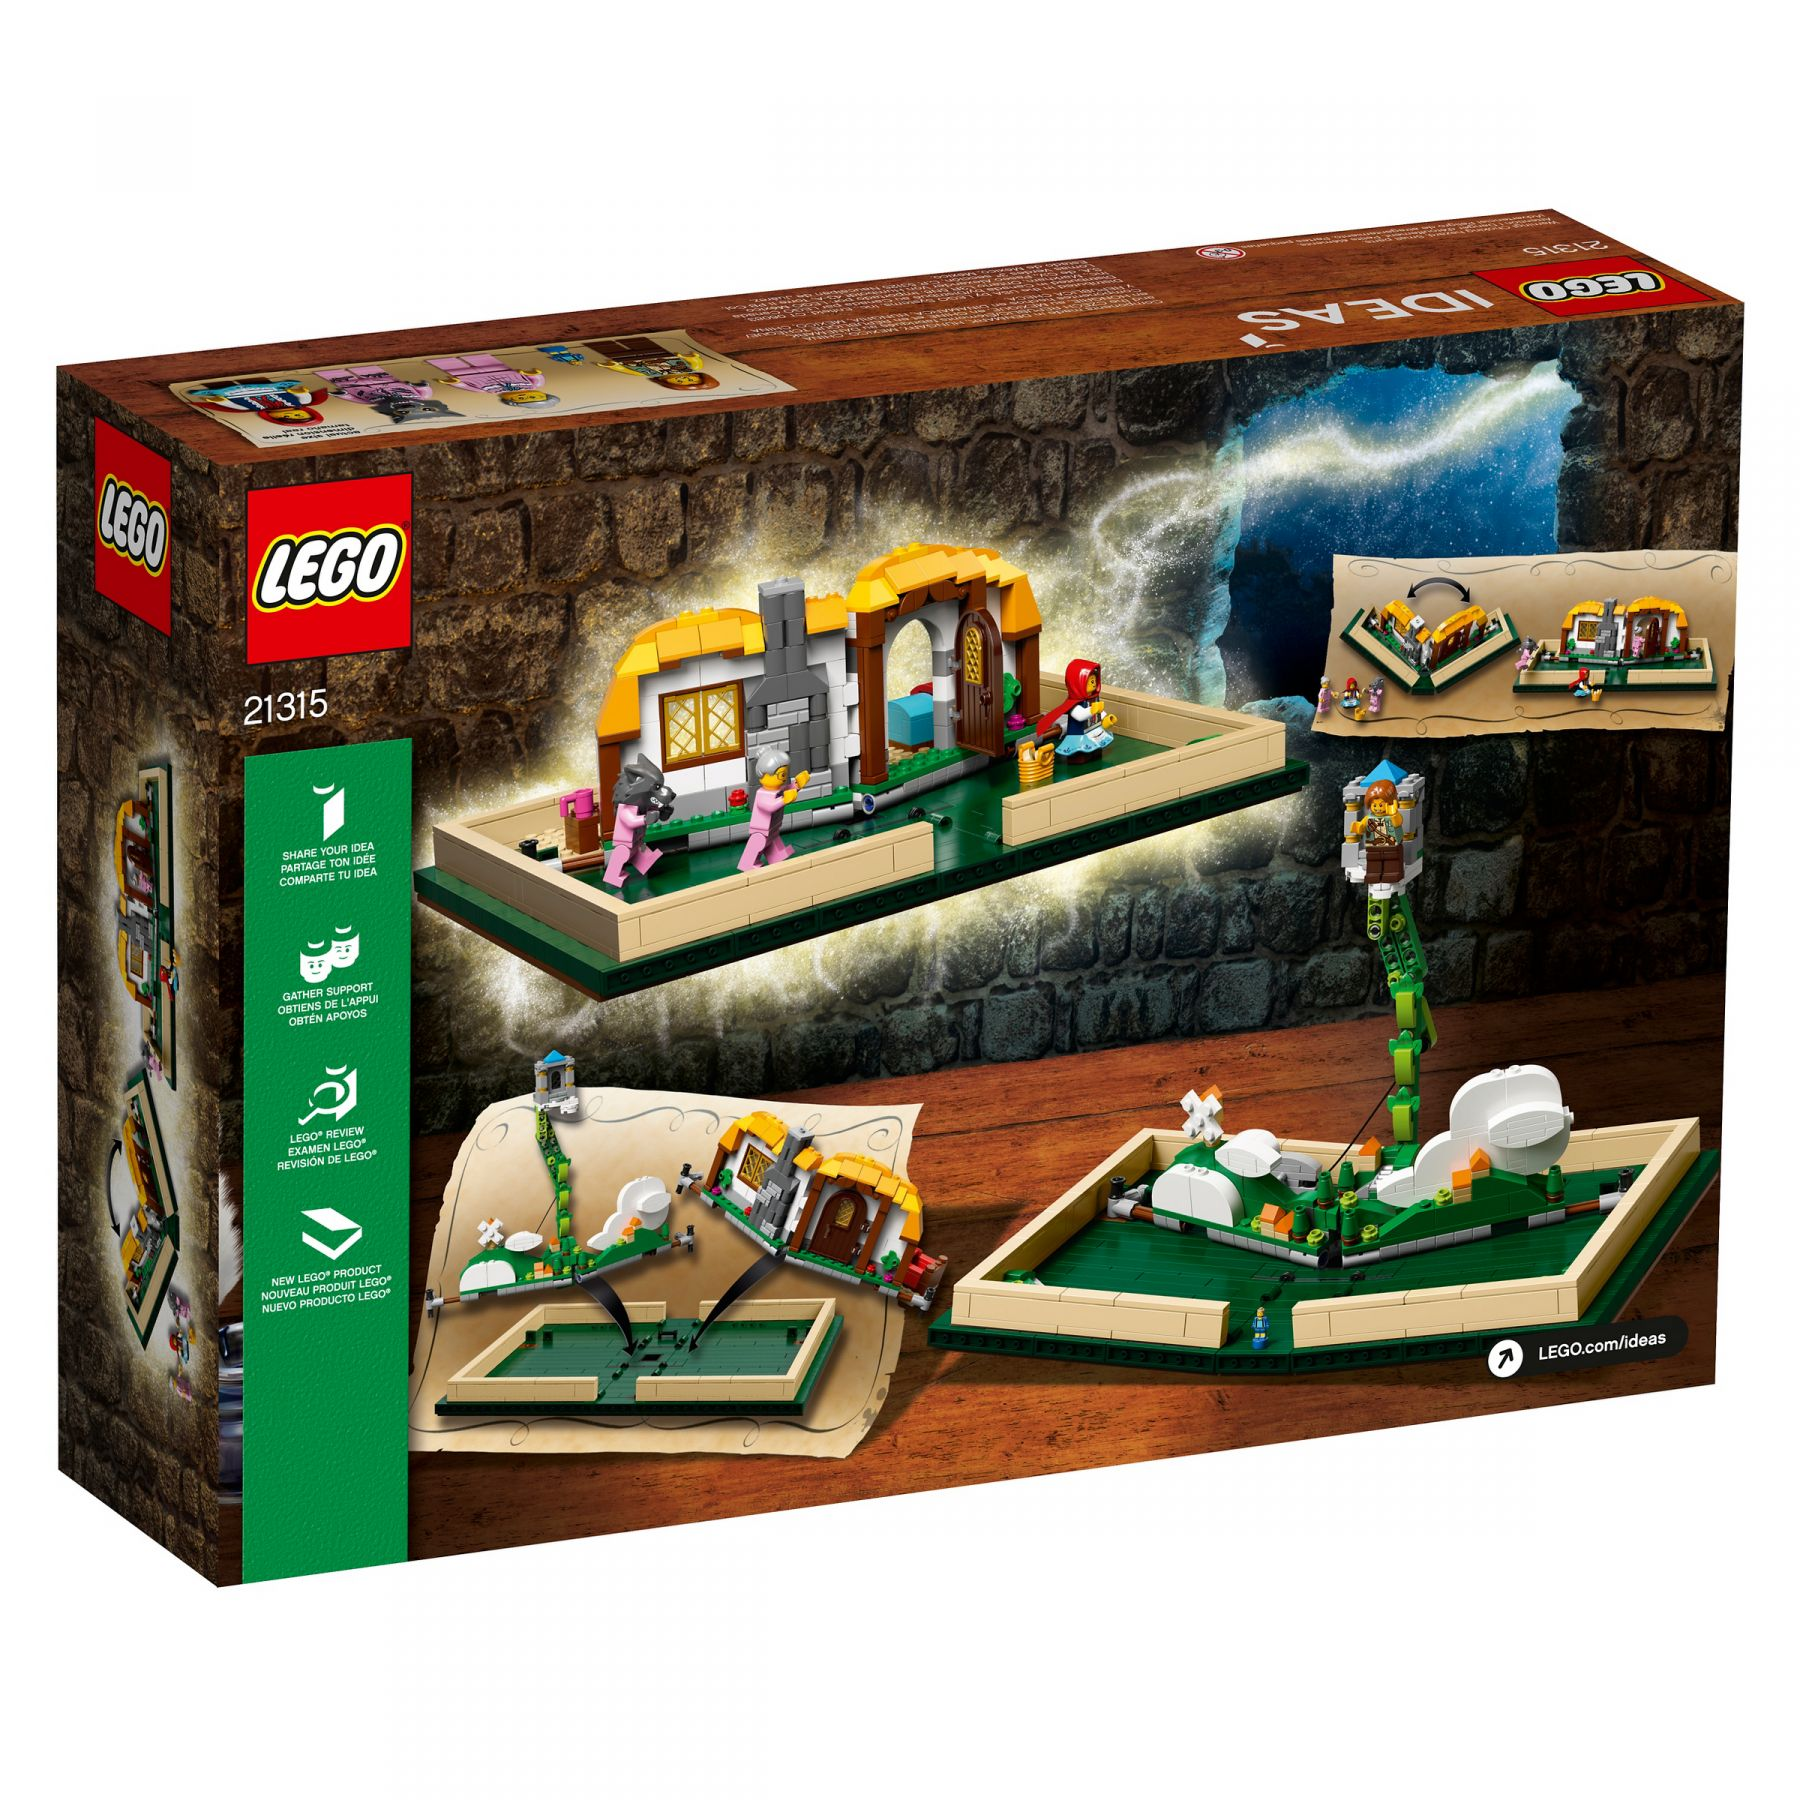 LEGO Ideas 21315 Pop-Up-Buch LEGO_21315_alt8.jpg